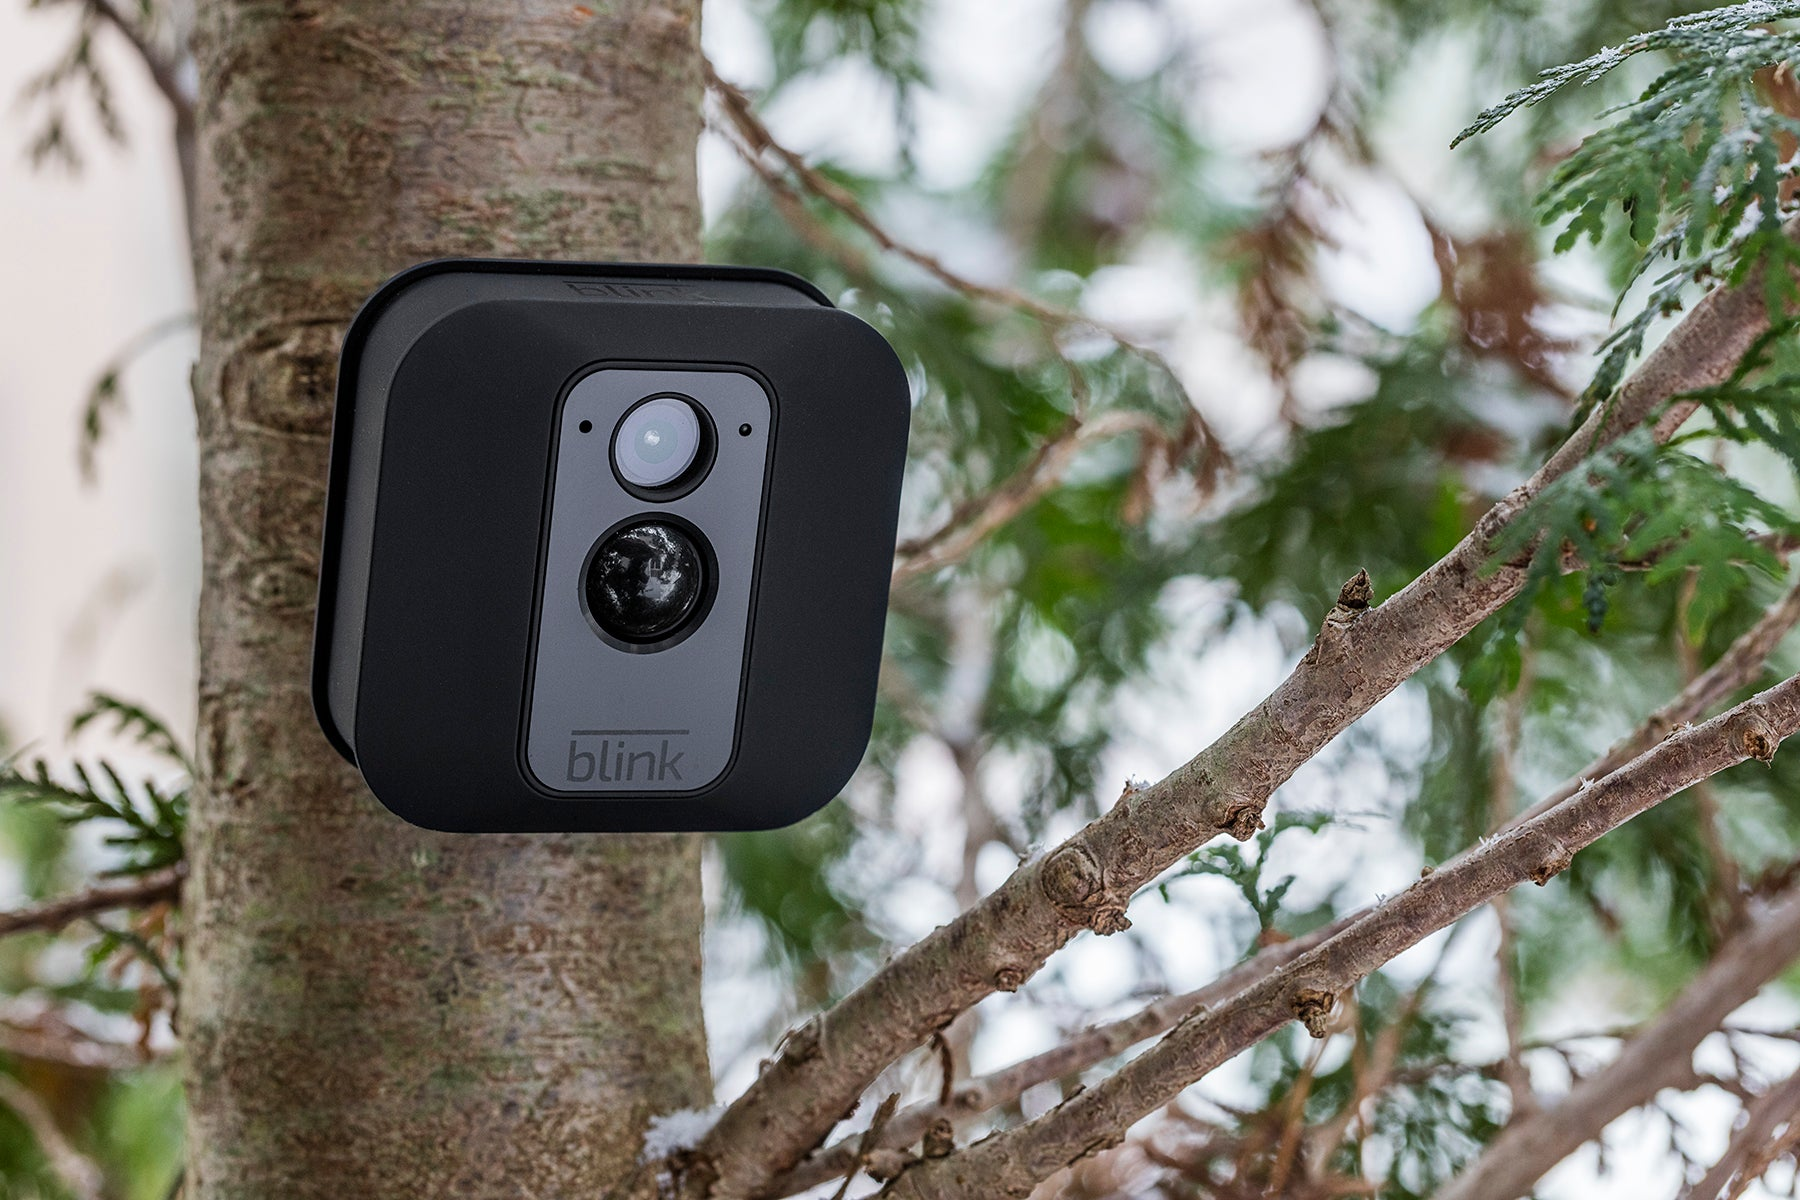 Share Blink footage for a chance to win a 2x camera Blink XT system worth £239!